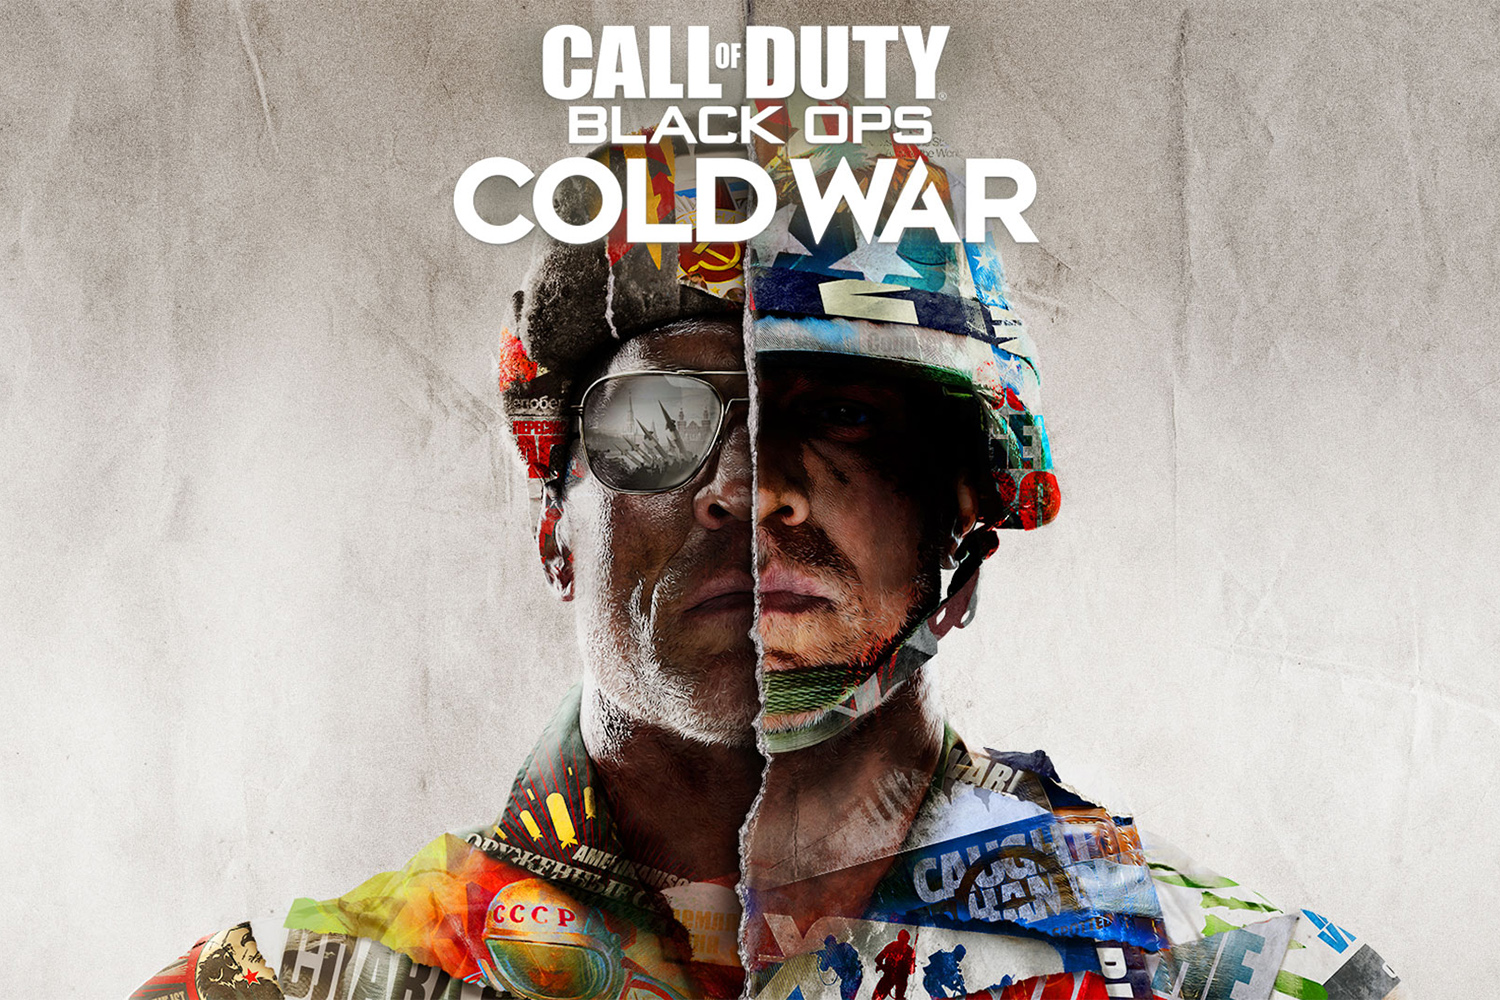 Call of Duty Cold War is about to get a big update